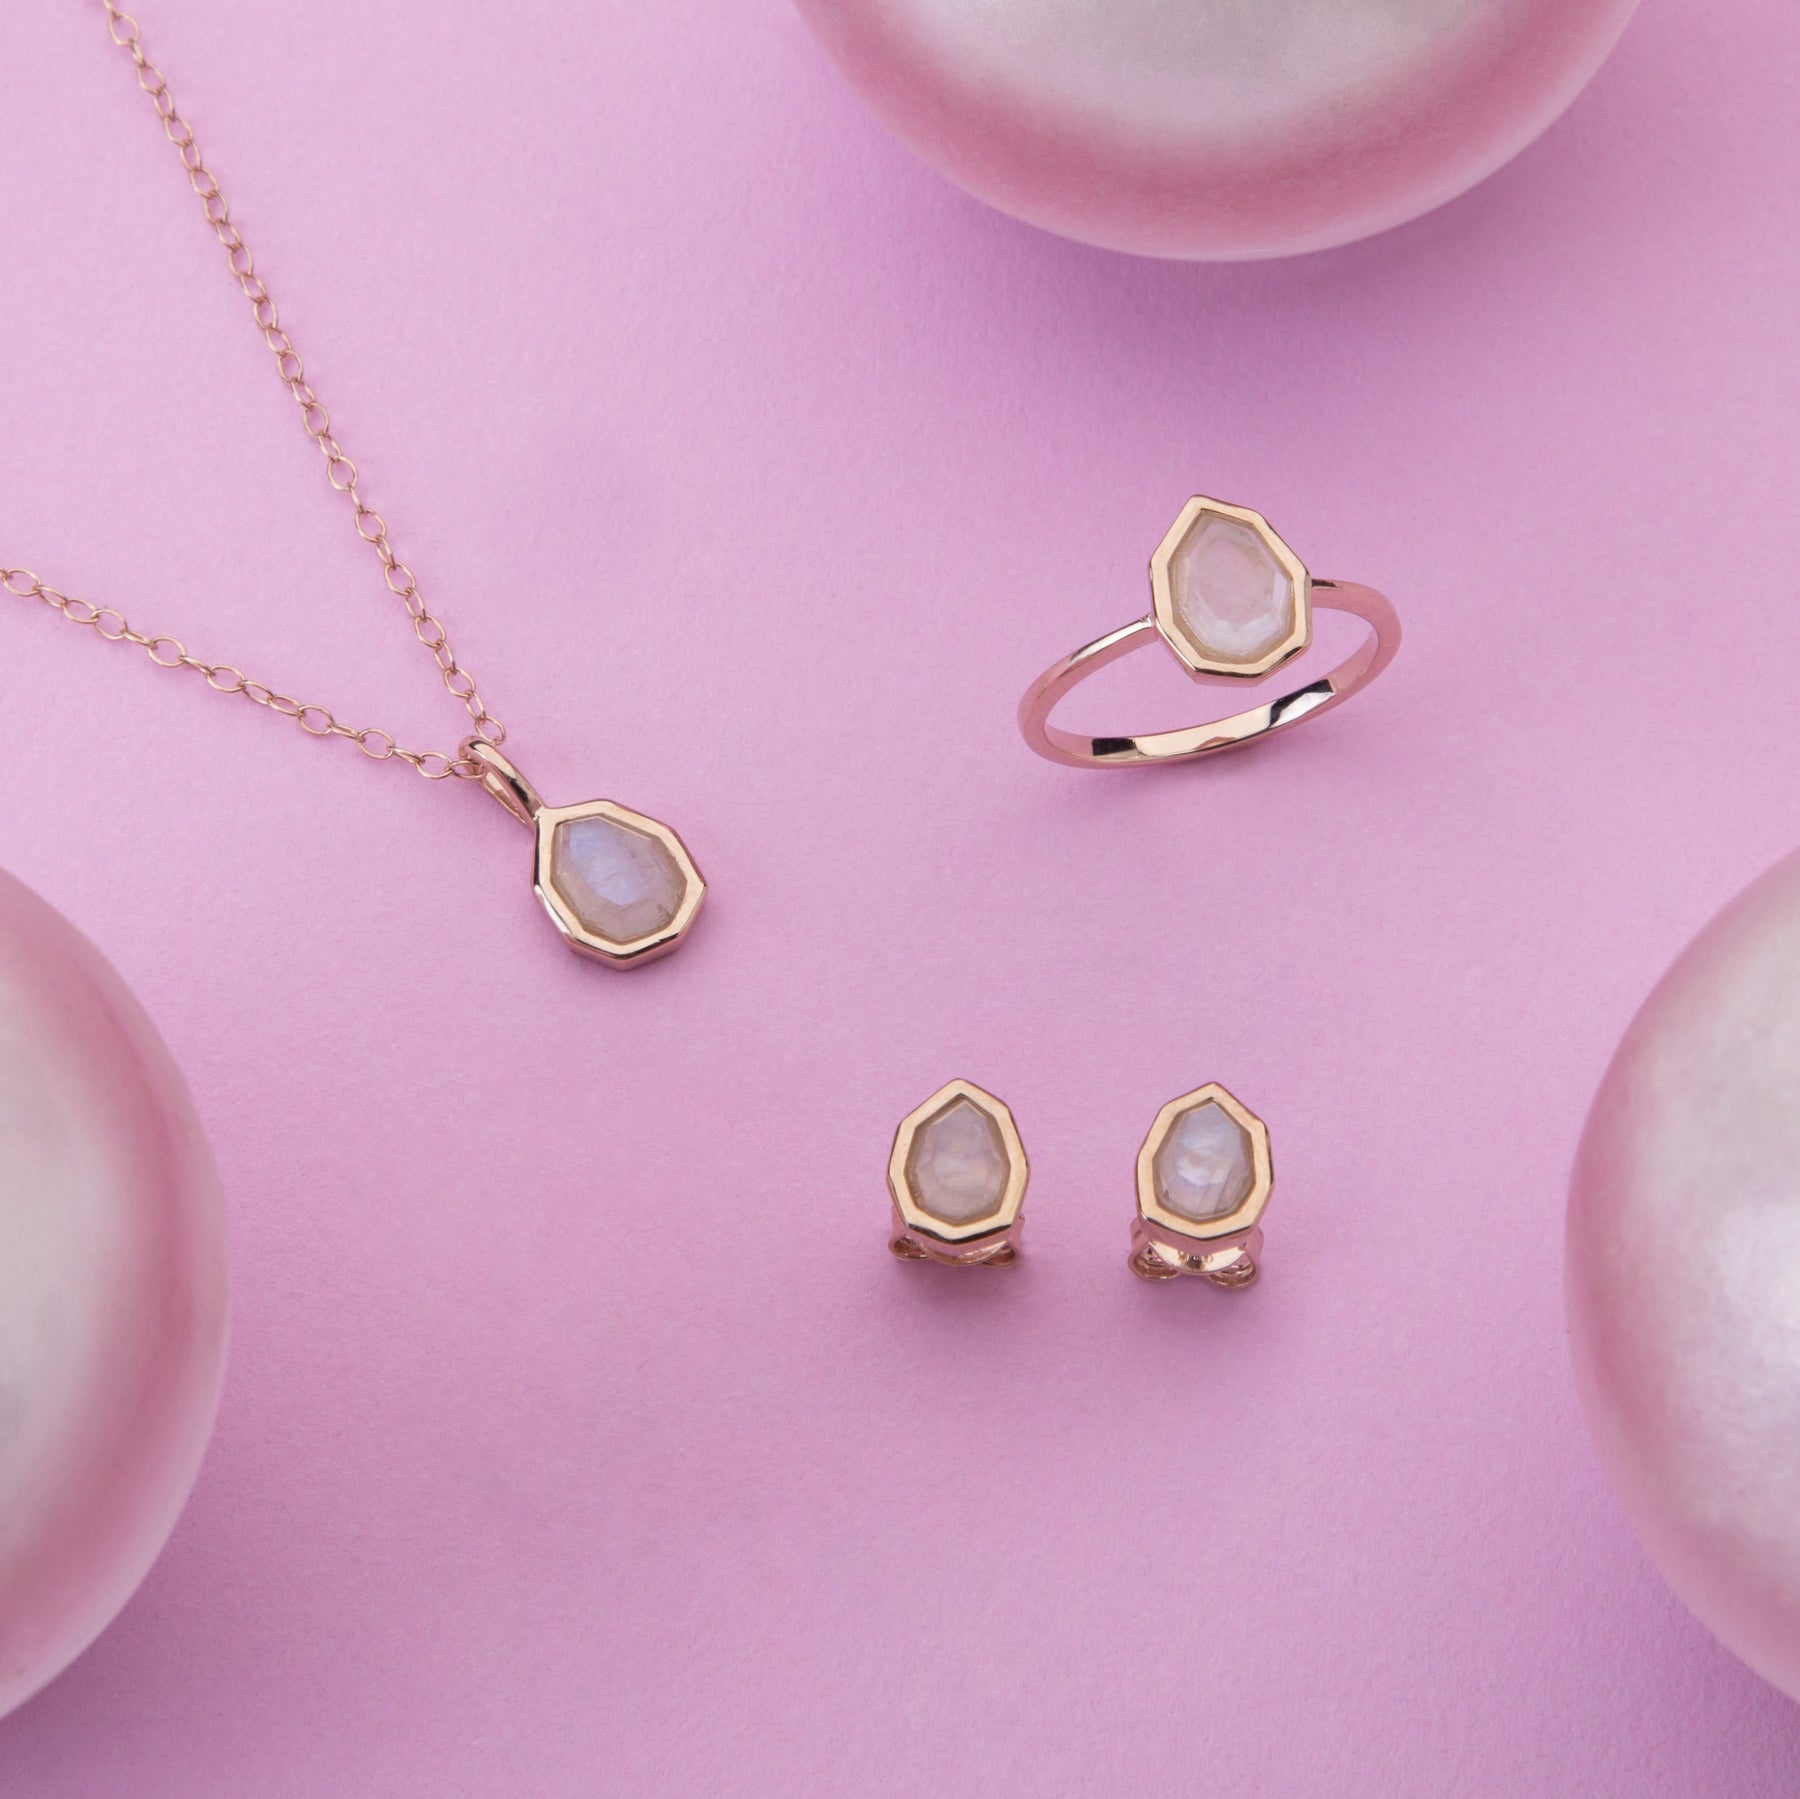 Moonstone Jewelry | Moonstone rings, earrings & necklaces